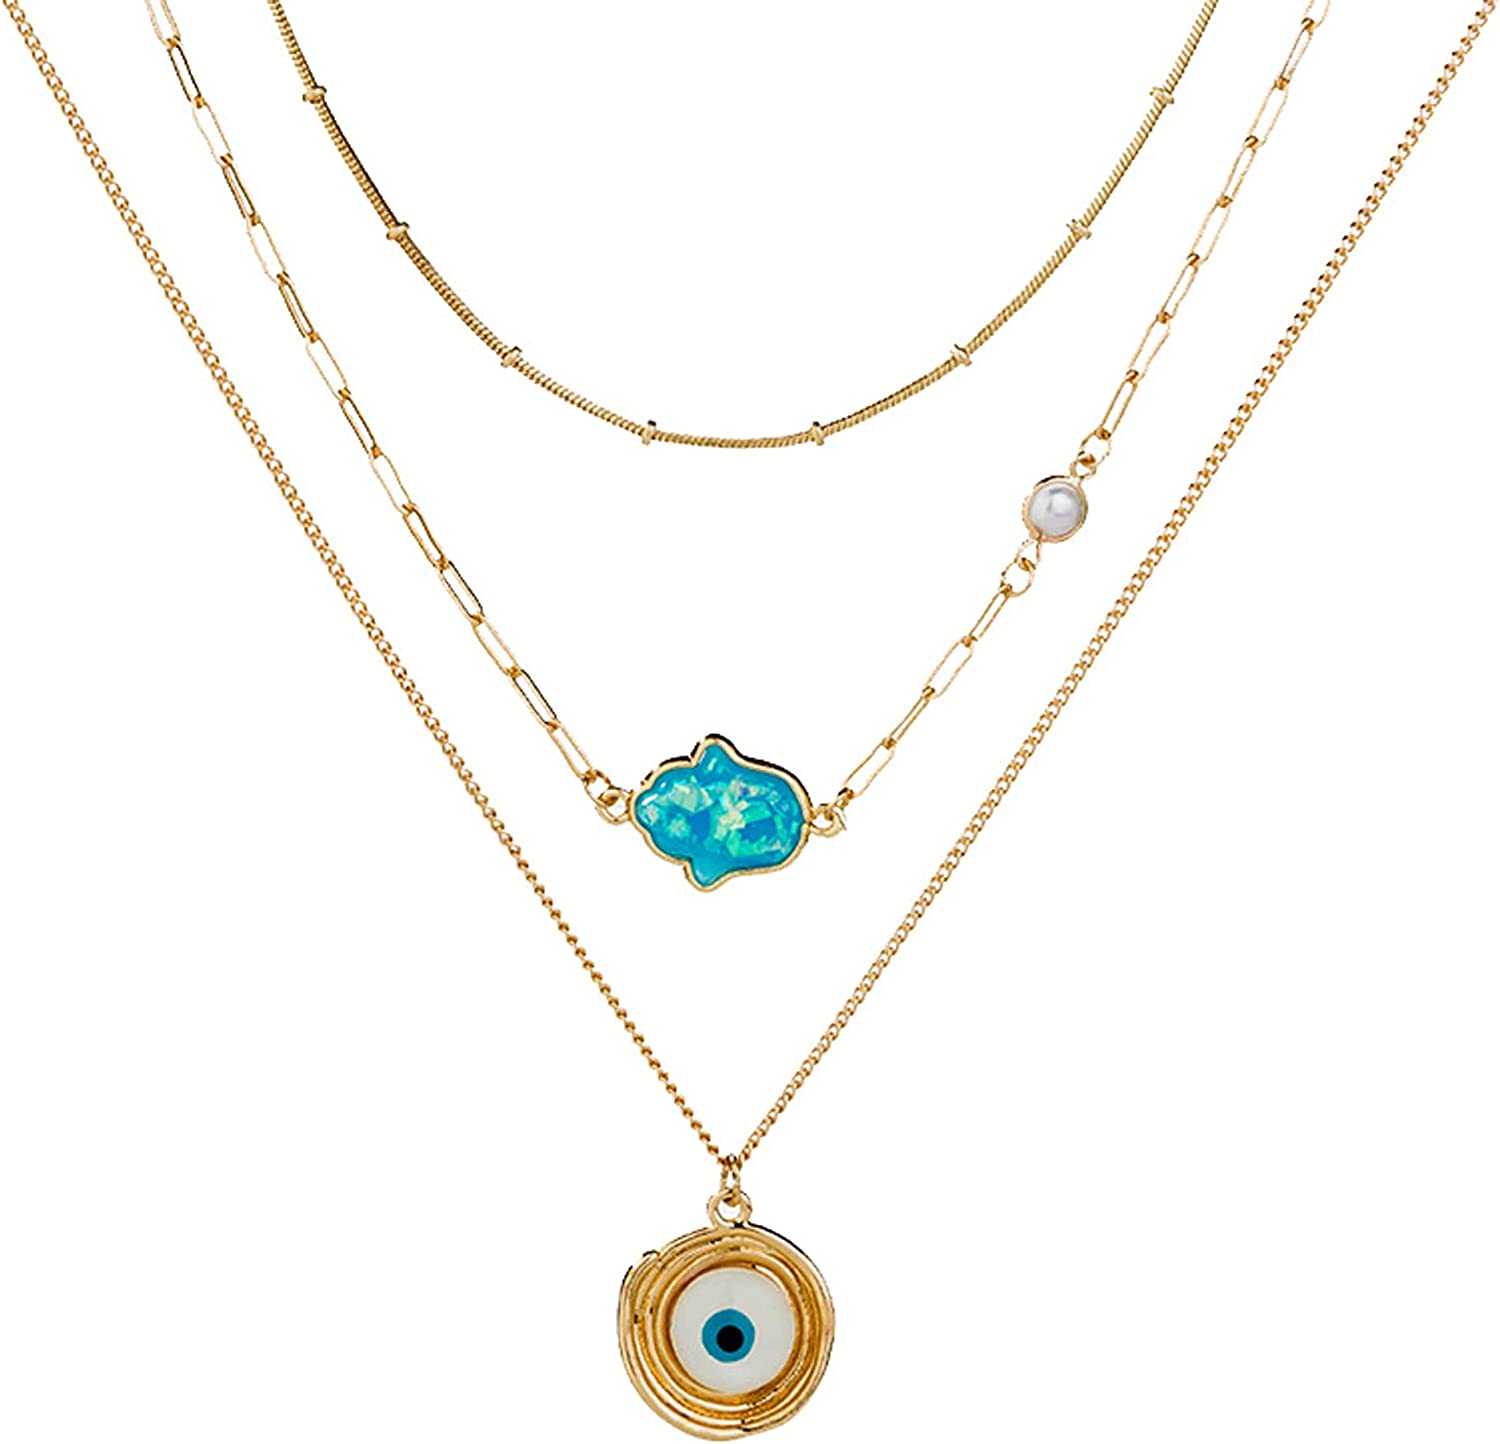 Evil Eye Layered Necklaces Blue Hamsa Paperclip Chain Choker Necklace Gold Plated Fashion Jewelry for Women Girls Good Luck Gifts